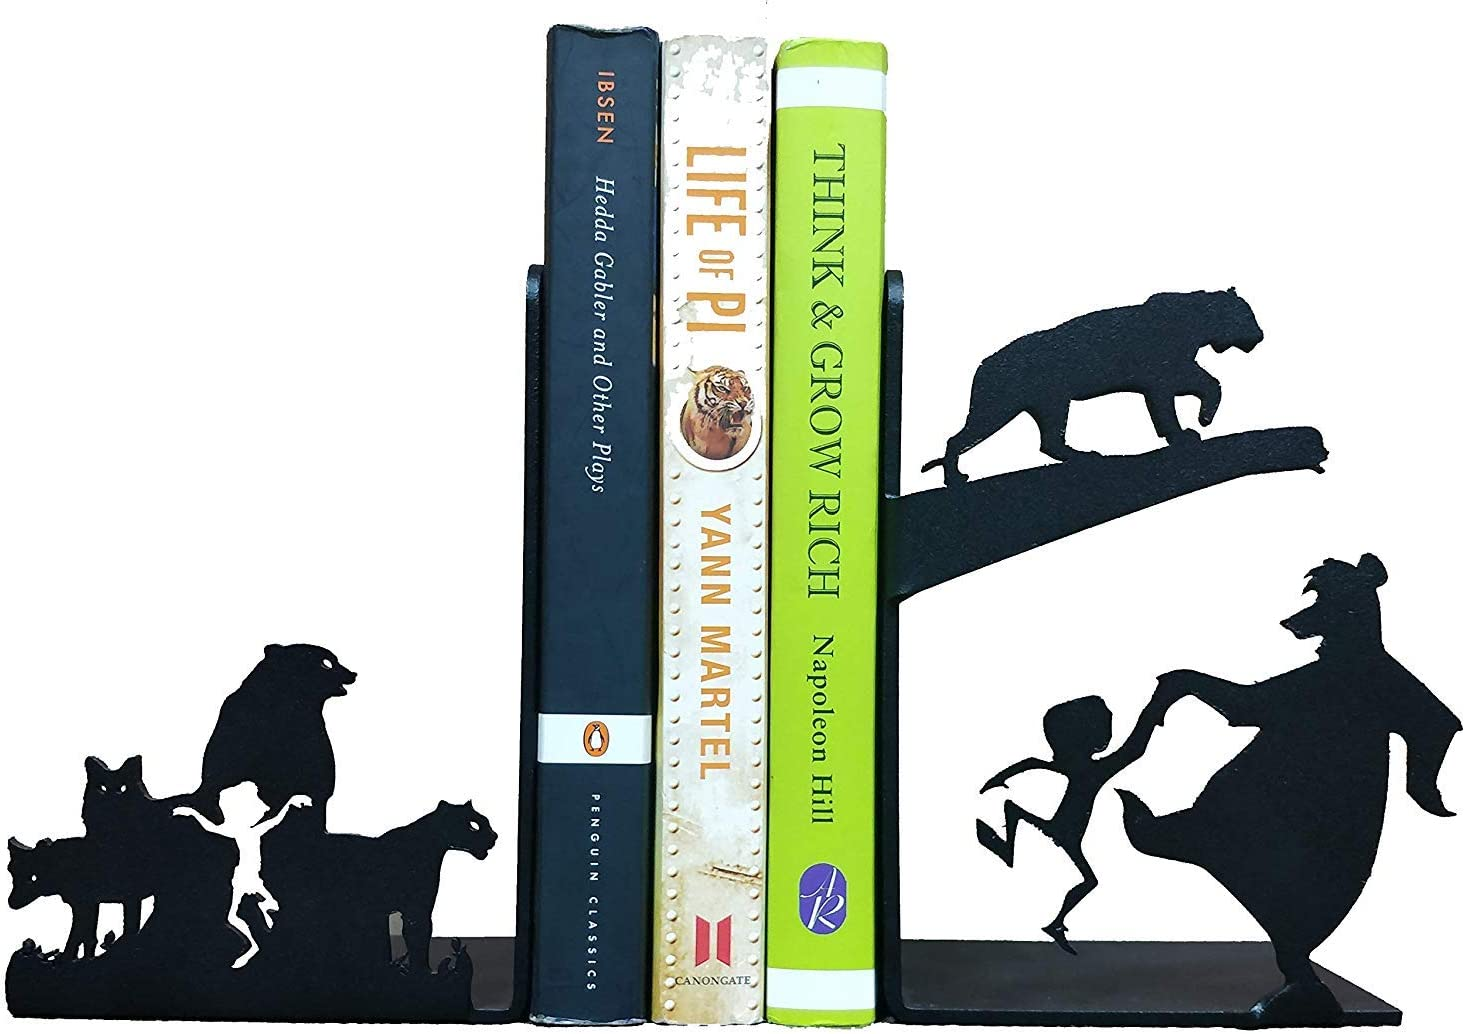 Wgloryind sold out Decorative Metal Bookend Childrens New item Skid Decor Non Room